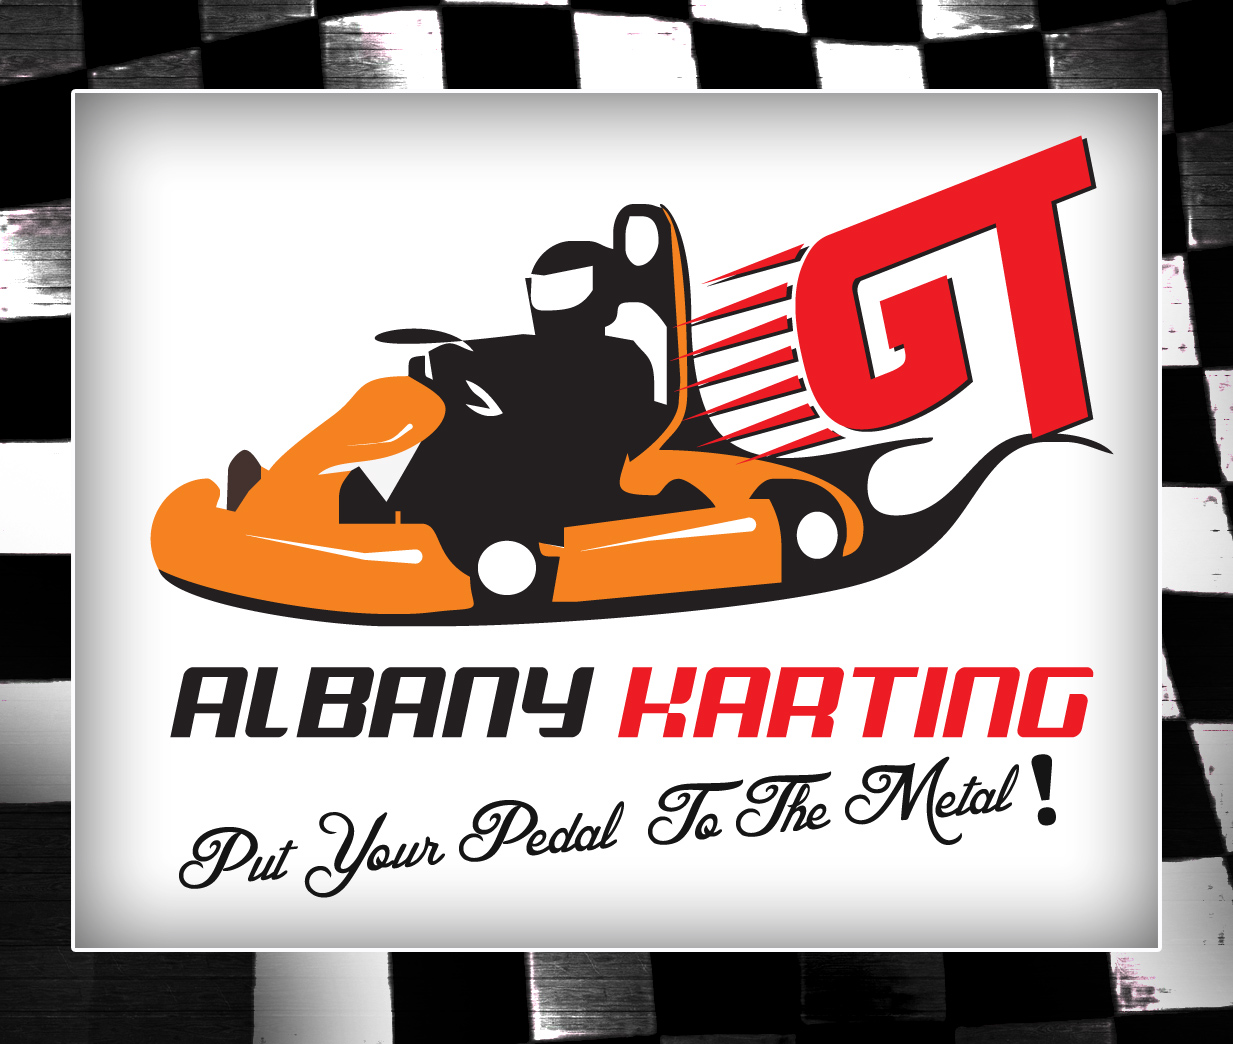 Graphic Design Logo Design for Albany GT Karting - Put Your Pedal To